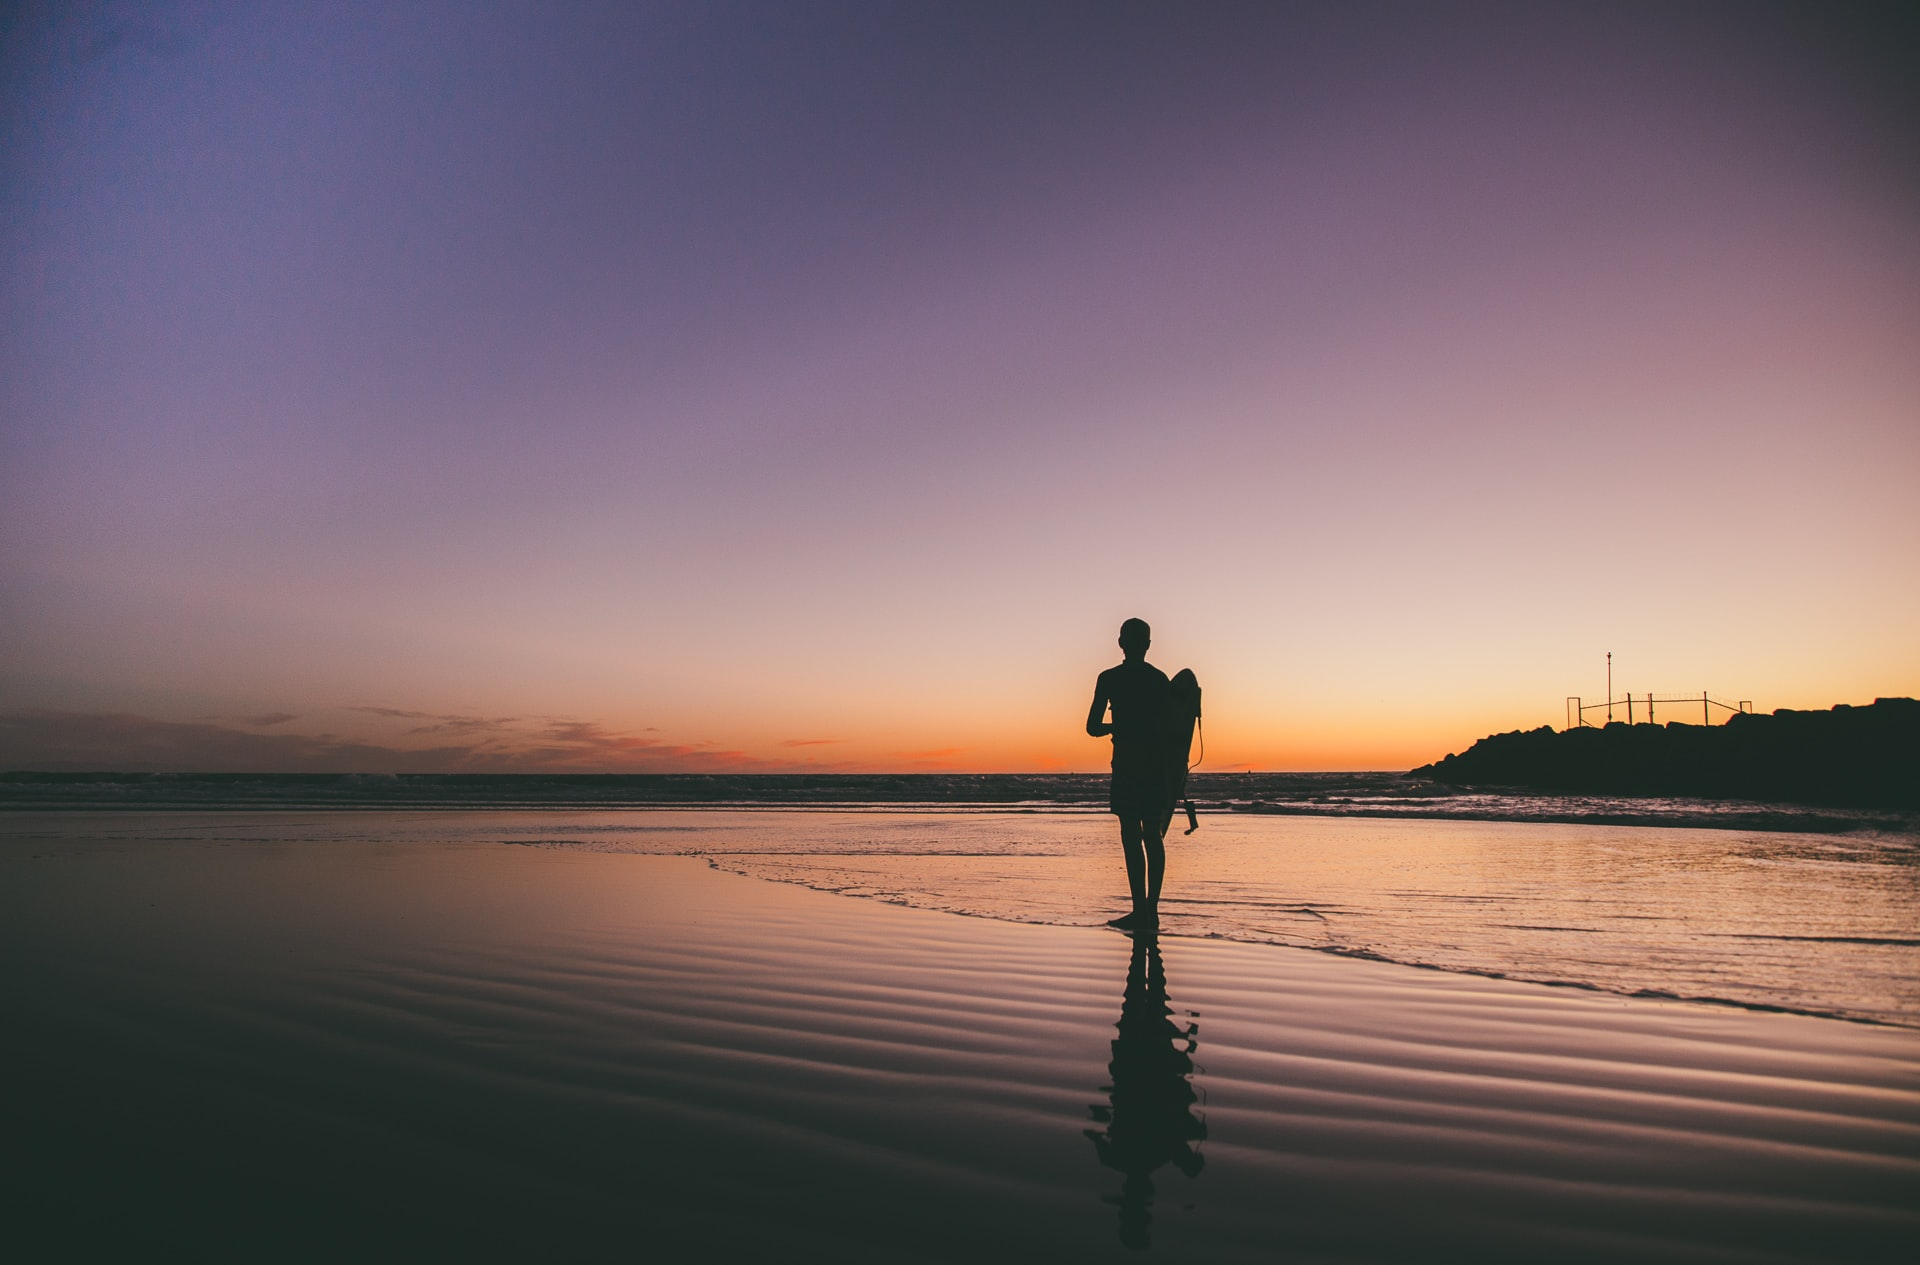 silhouette photo of man near the shore